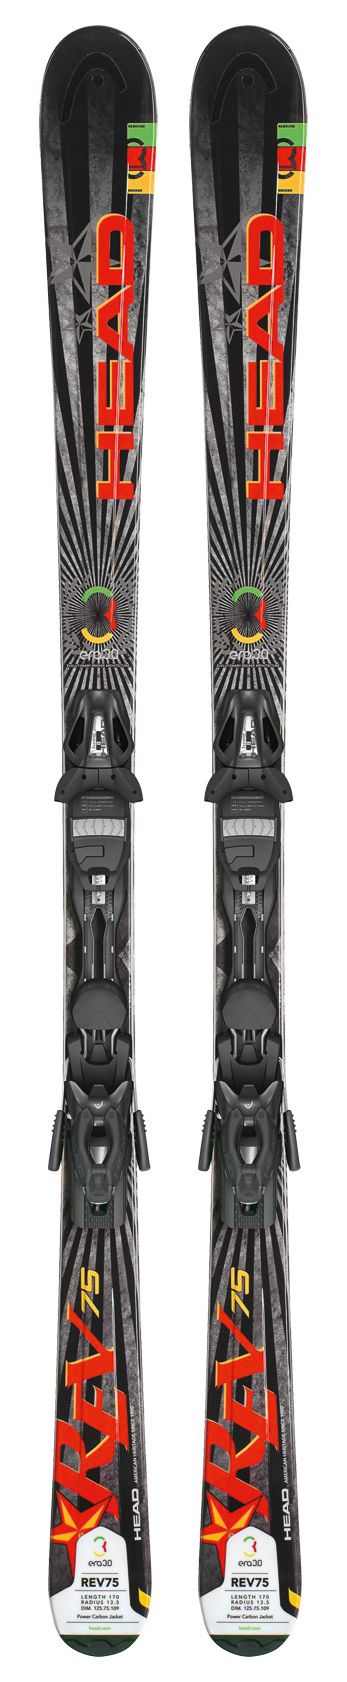 Ski Key Features of the Head Rev 75 Skis w/ Pr 11 Bindings: Lengths: 149/156/163/170/177 Dimensions: 125/75/109 @ length 170 Radius: 13.5 @ length 170 Era 3.0 Power Carbon Jacket Structured UHM C Base Power Rail PR11 Bindings: 3-11 1770g SX Toe with TRP System Full Diagonal AFS Power Rail SX Heel Dura Coating - $348.95